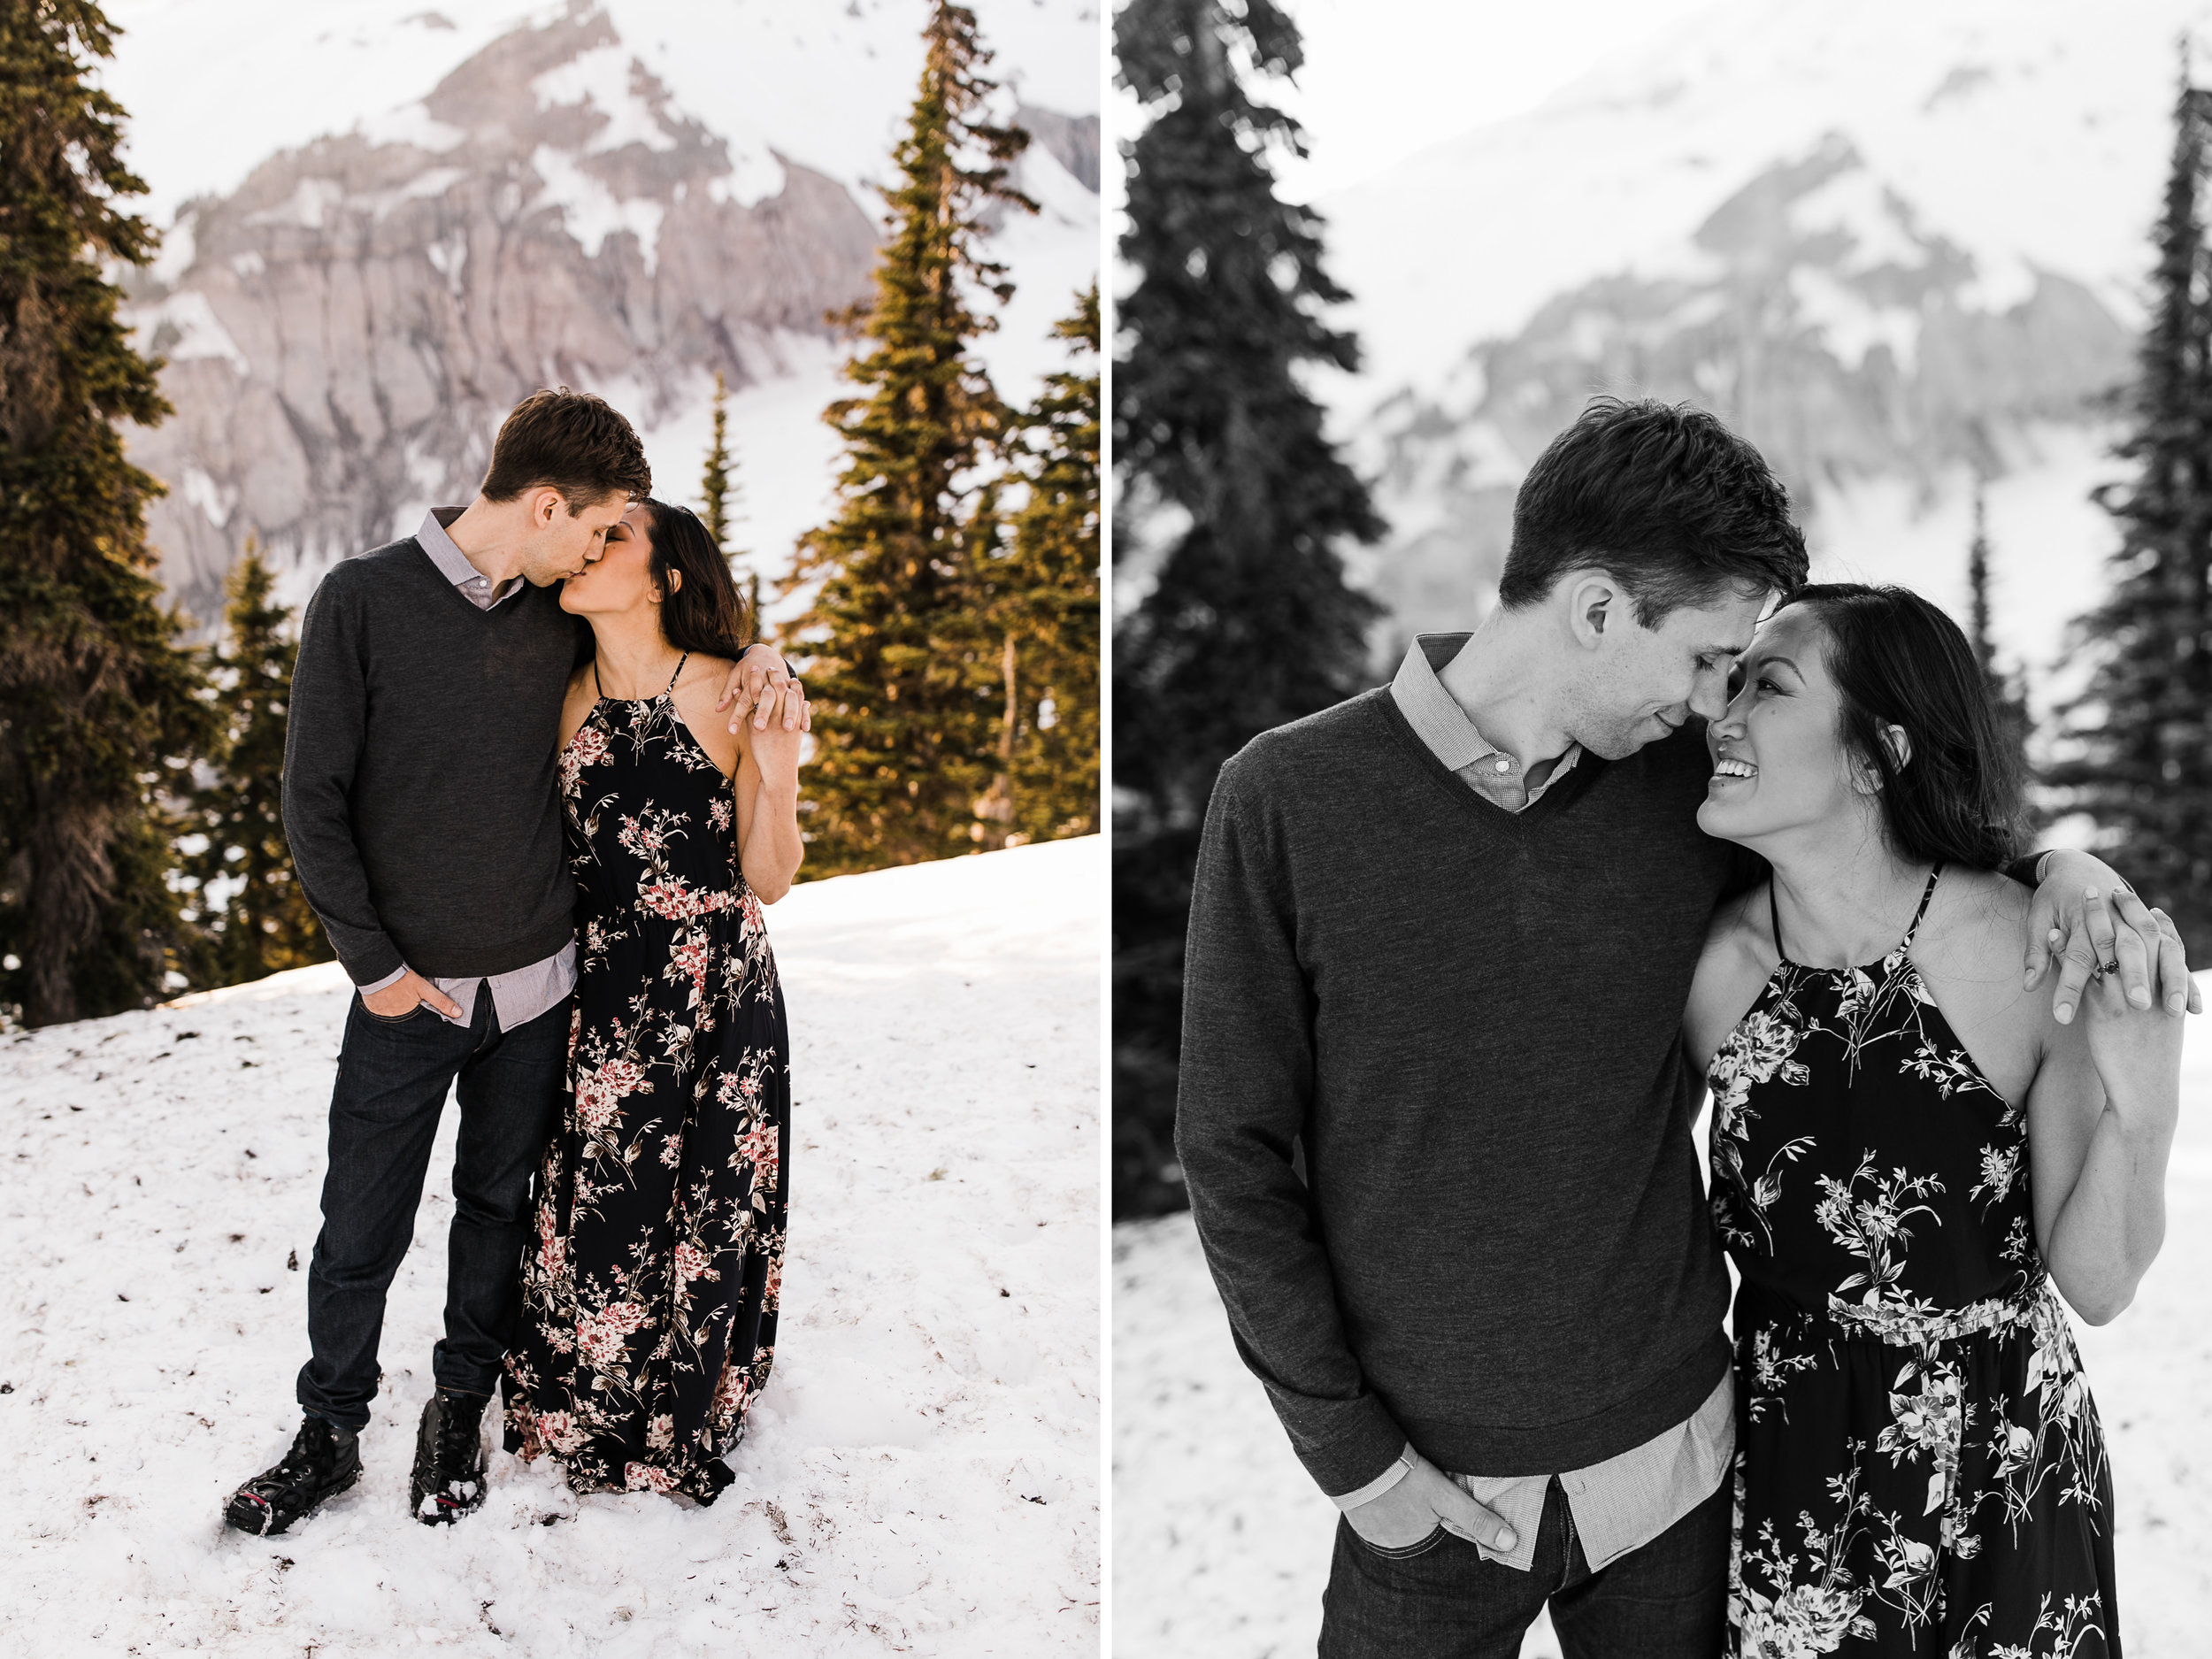 stacey + alec's snowy engagement session in mount rainier national park | national park elopement photographer | adventure wedding photographer | the hearnes adventure photography